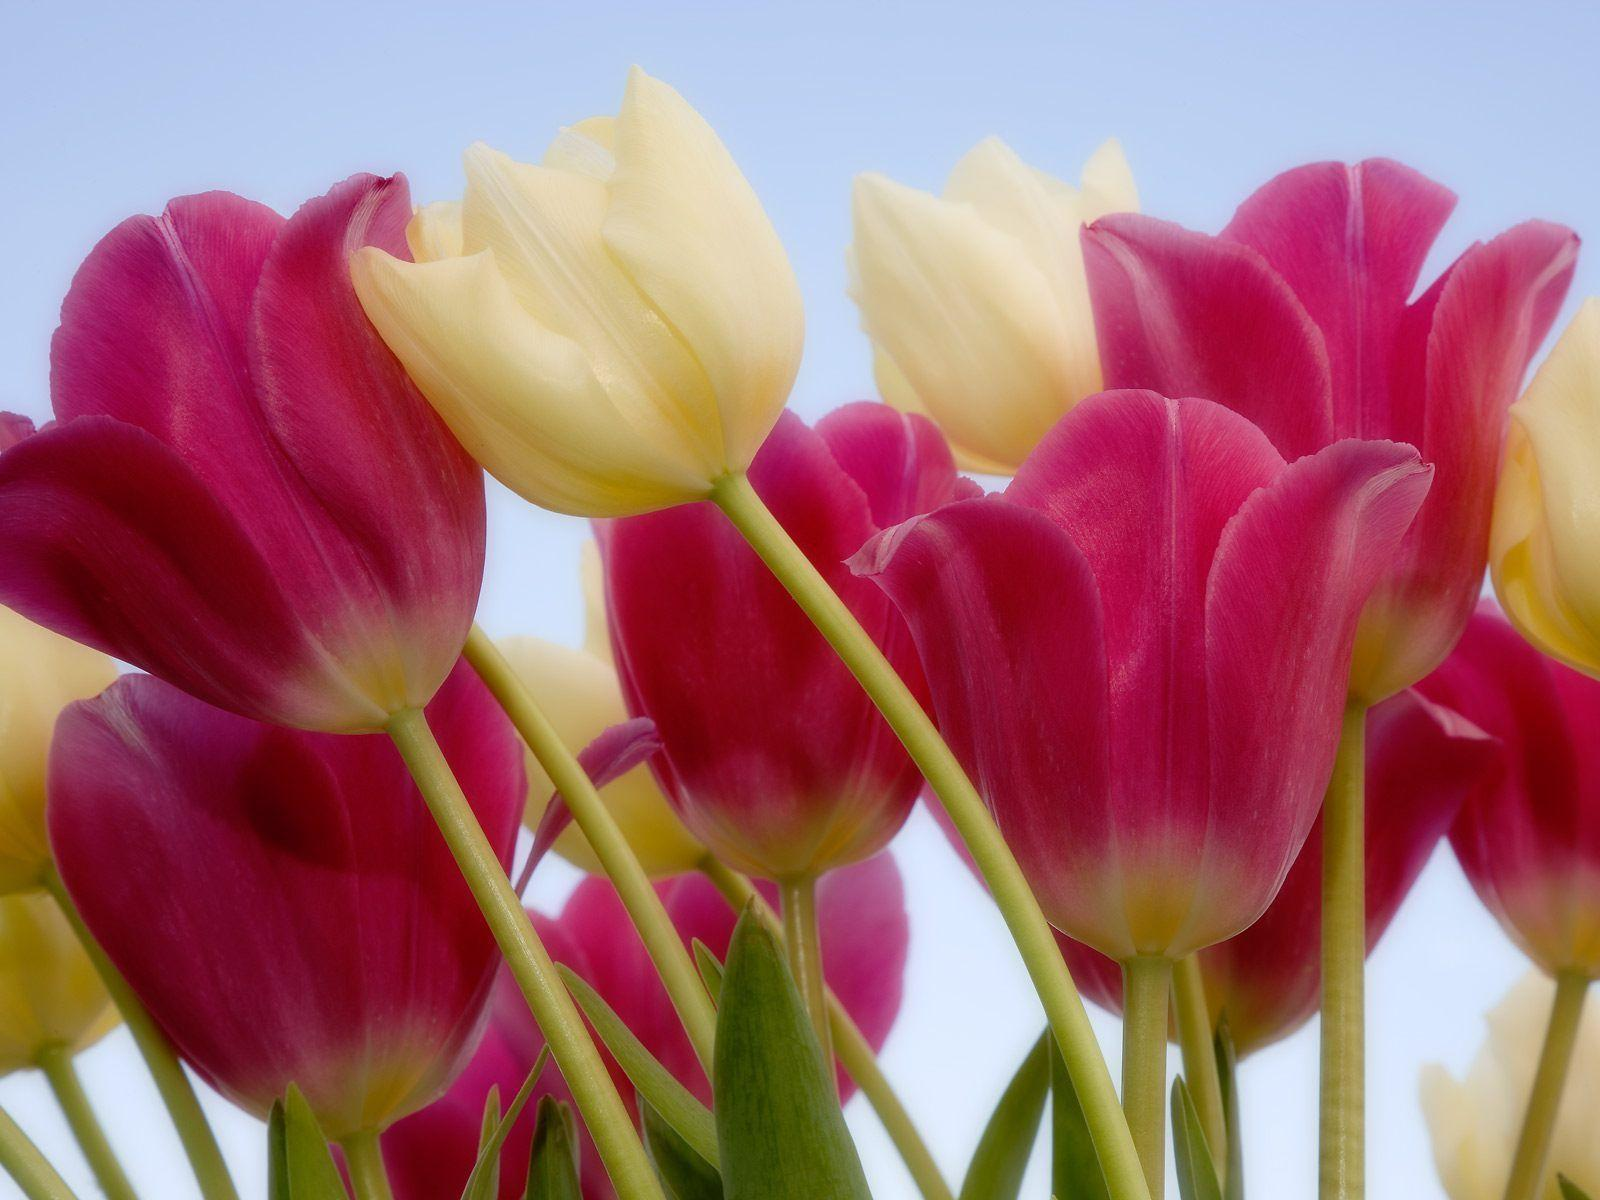 10 Tulips Flower Wallpapers For Your Desktop Backgrounds